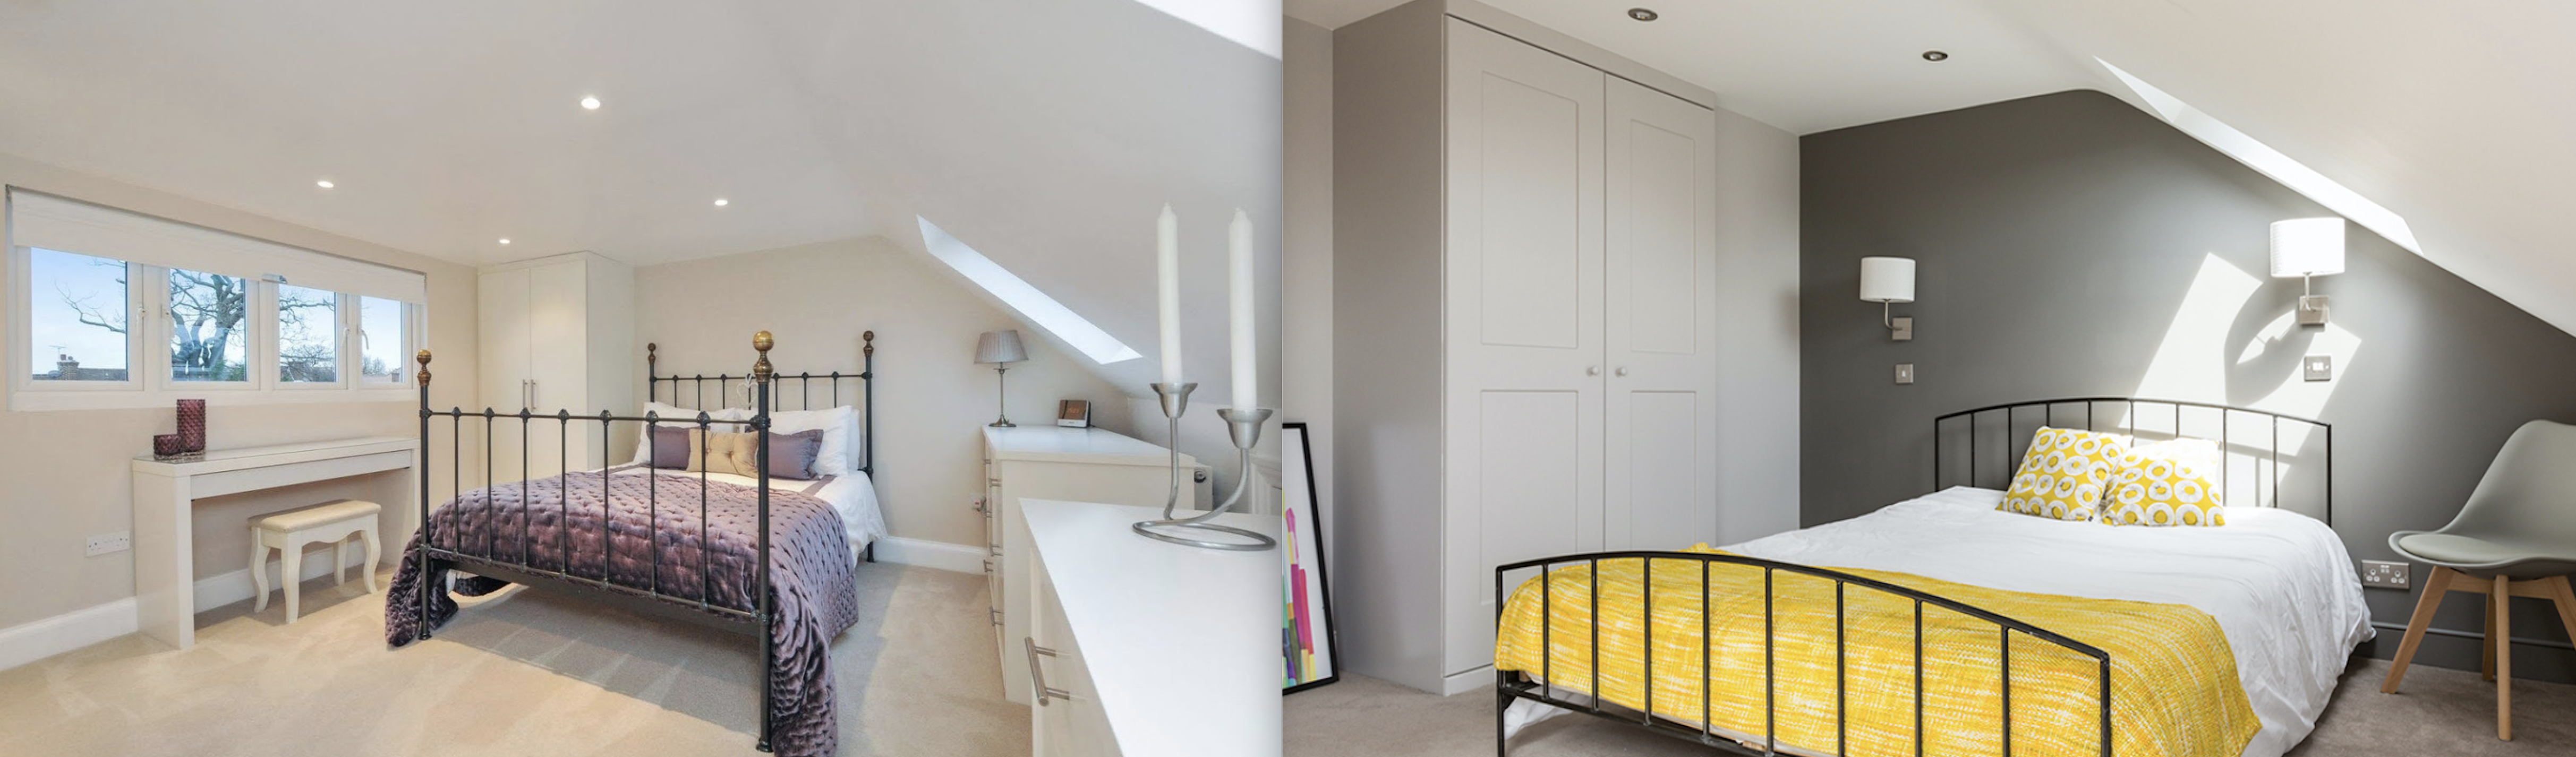 Beautiful Dormer loft conversion in Warrington, creating a new master bedroom with private bathroom, walk in wardrobe and stunning new oak staircase with Velux polyurethane SK06 GPU windows.